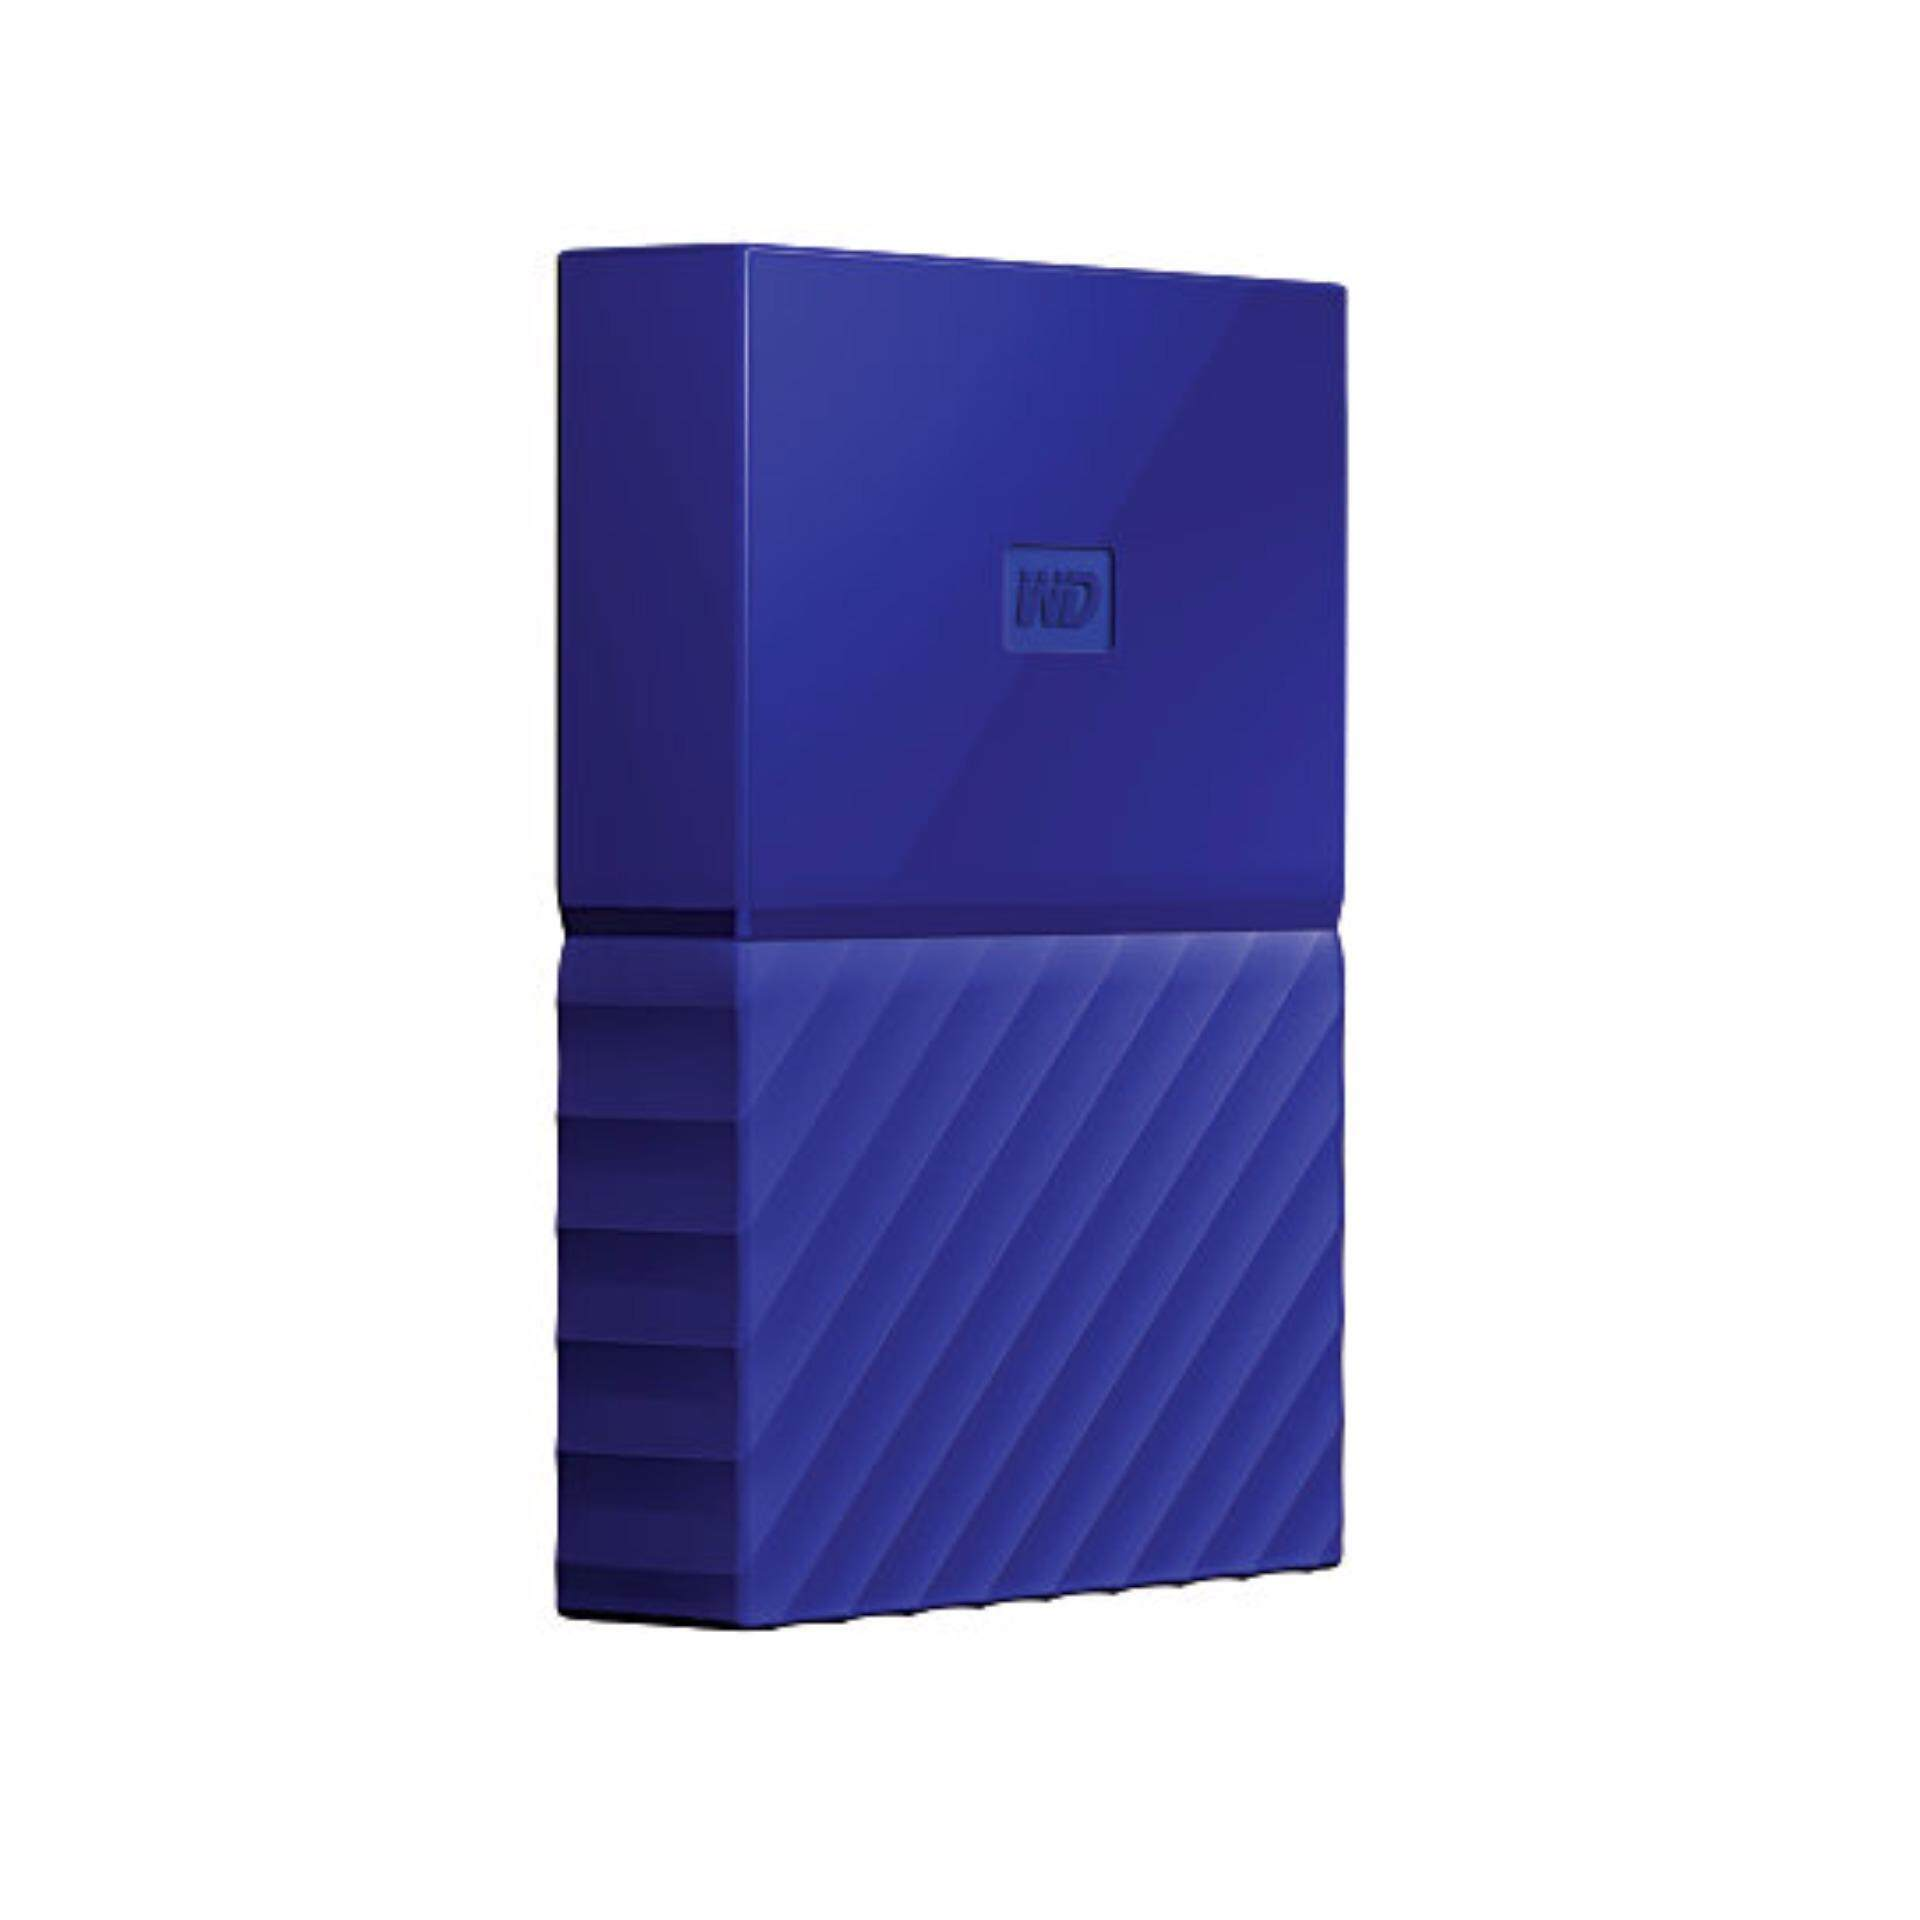 WD Western Digital HDD My Passport ( 1TB ) Portable Storage External Hard Disk Drive (ORIGINAL/ READY STOCK) - BLUE